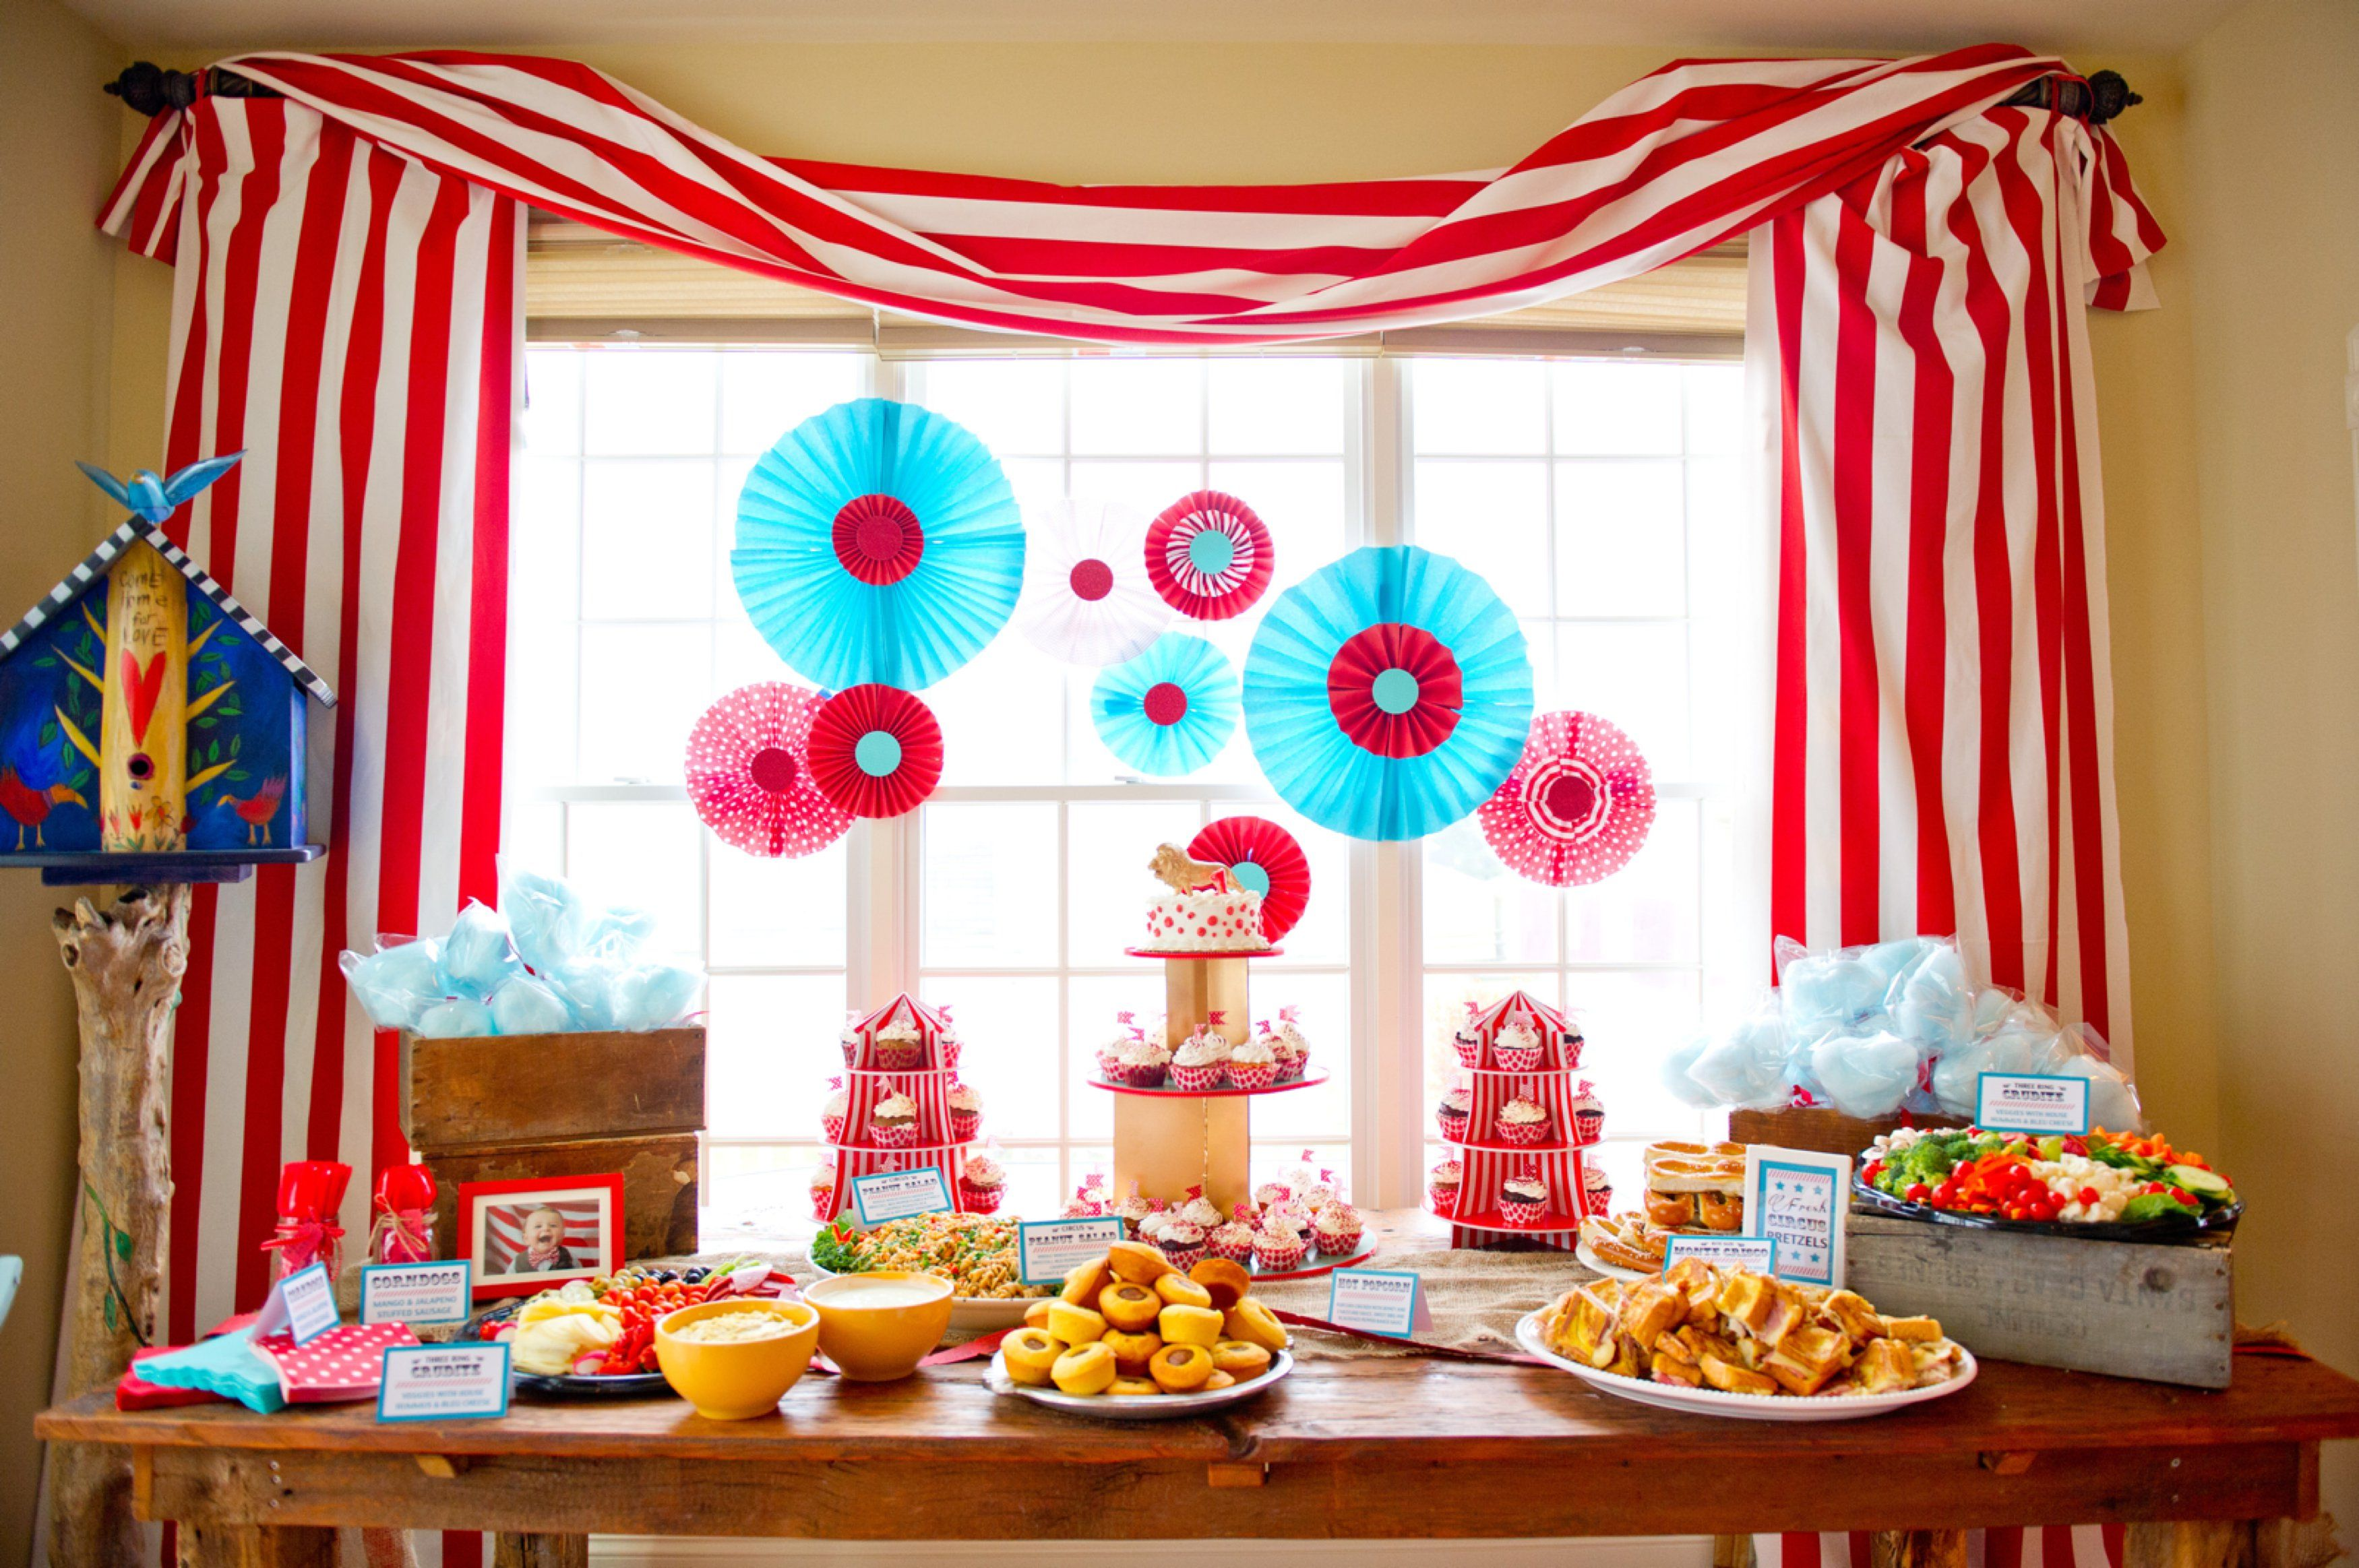 of decor decorations uk vintage supplies party decorating circus